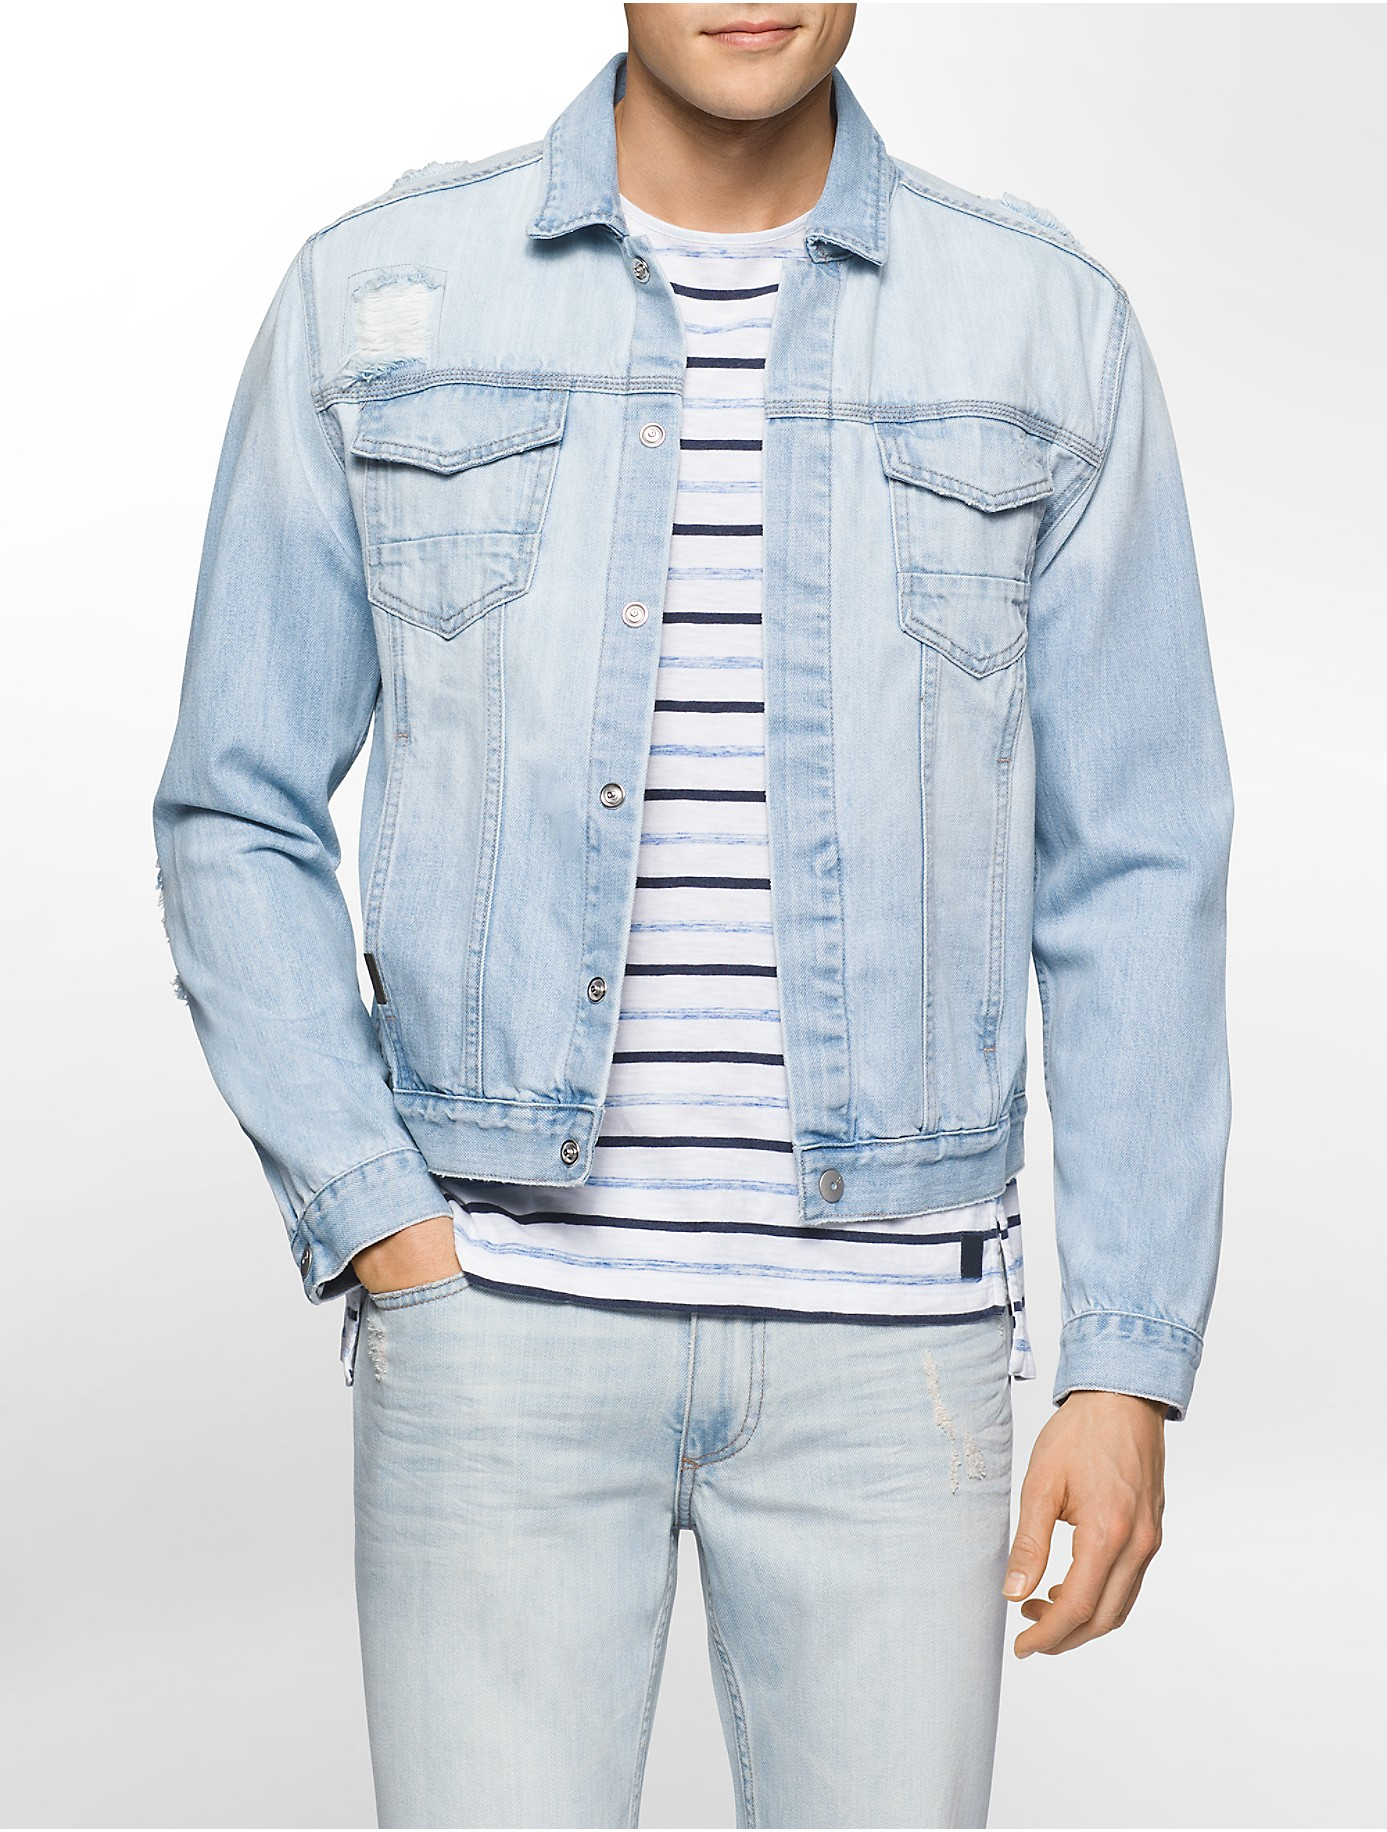 Barbour Sapper Jacket >> Lyst - Calvin Klein Jeans Distressed Jean Jacket in Blue ...